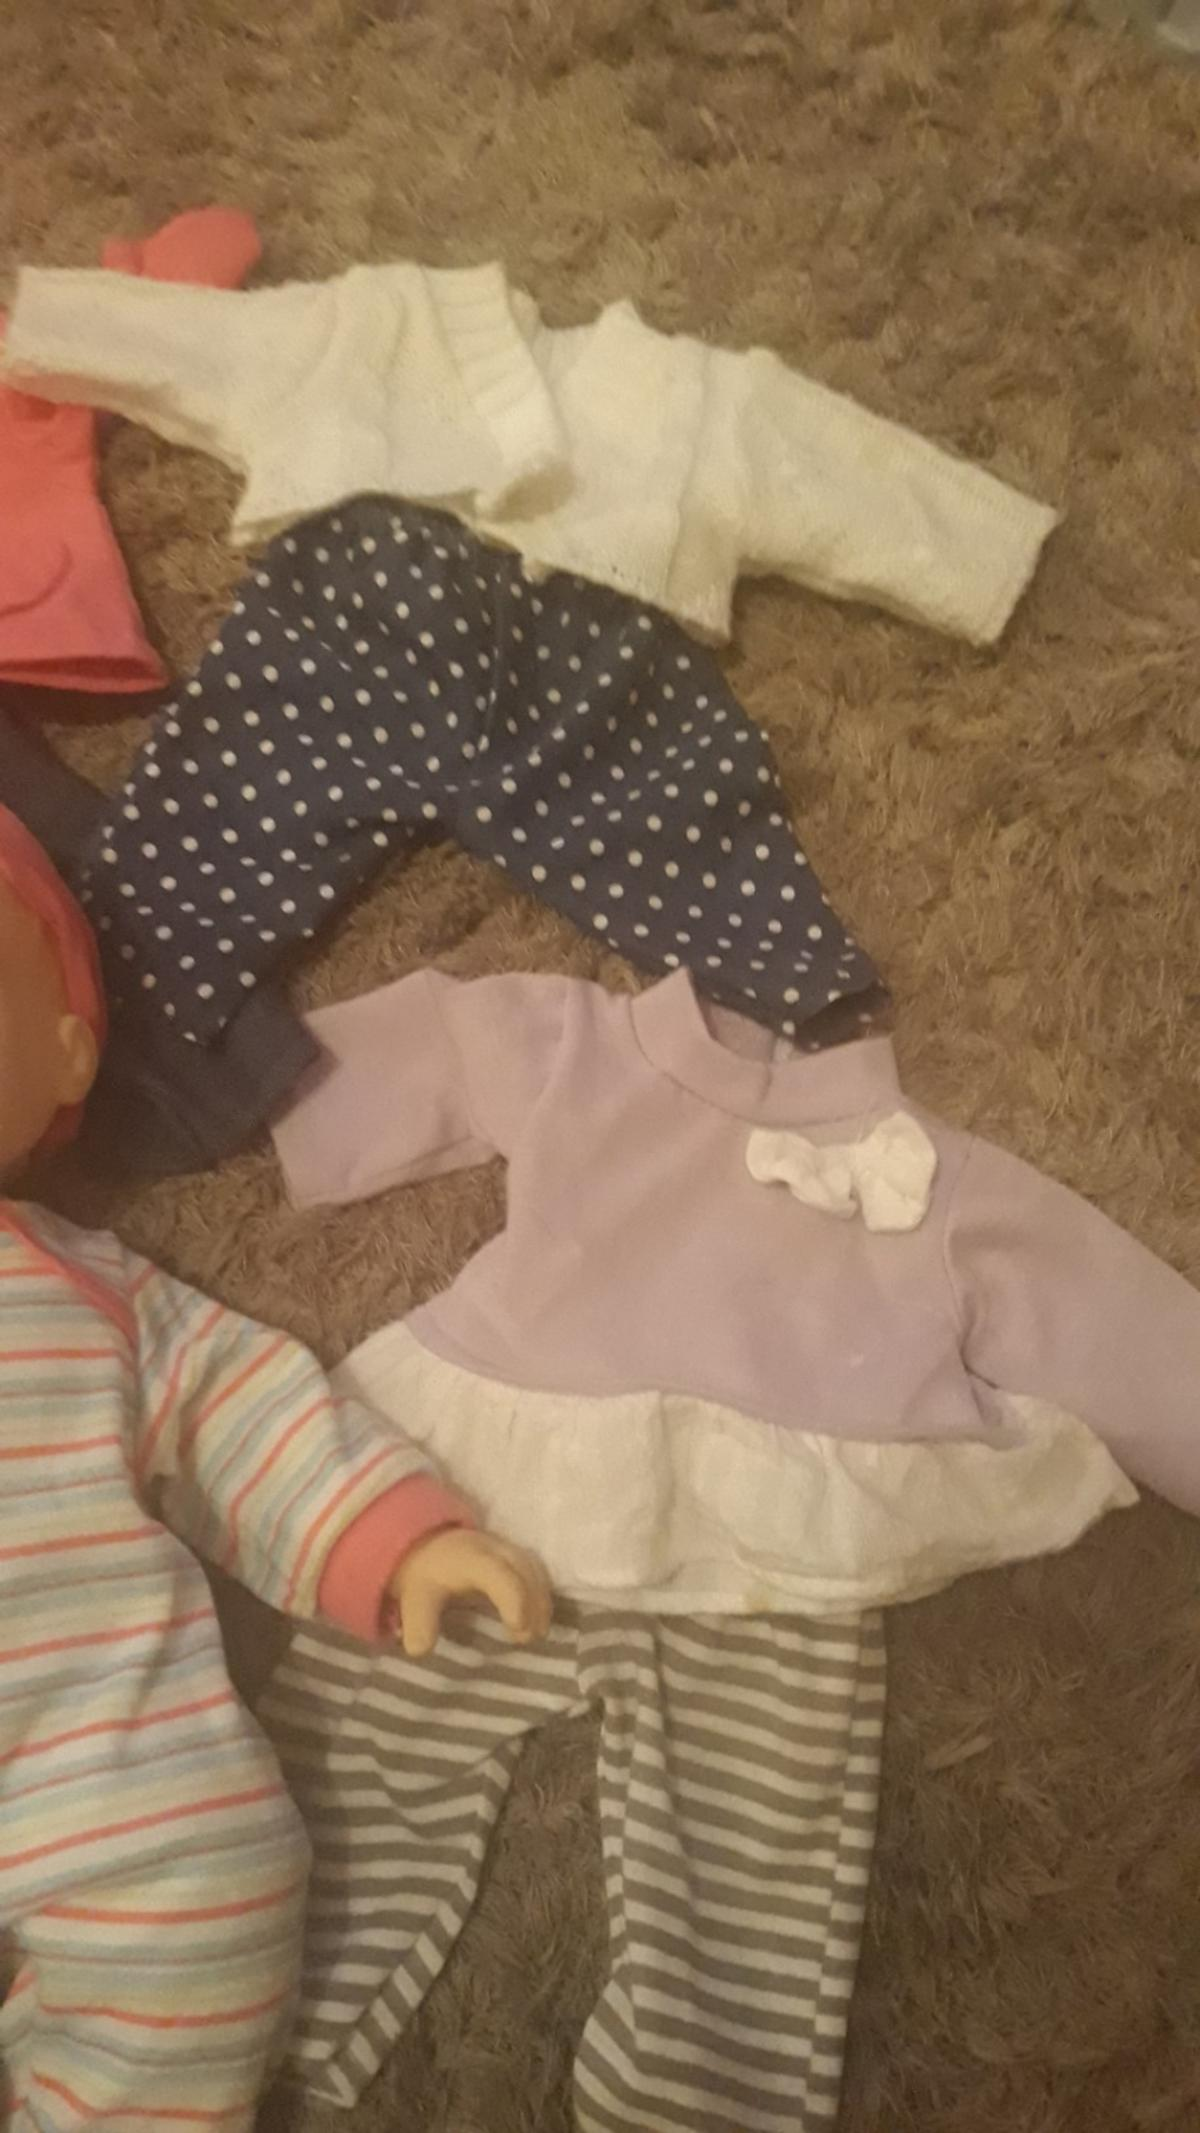 talking doll and clothes in LE3 Blaby für £ 7,00 kaufen - Shpock